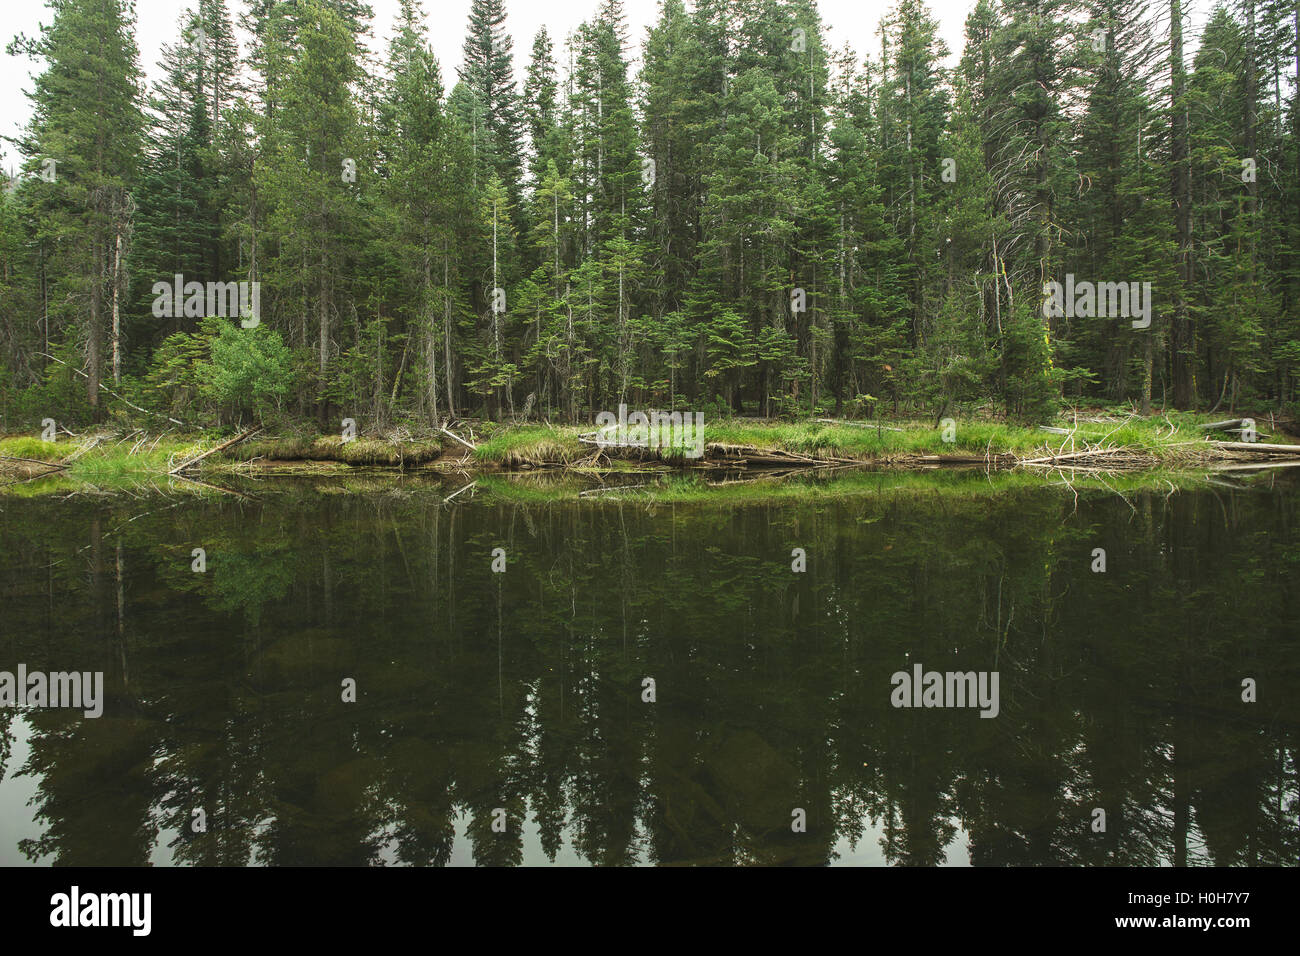 Evergreen trees reflect on the water in California's Yosemite National Park Stock Photo